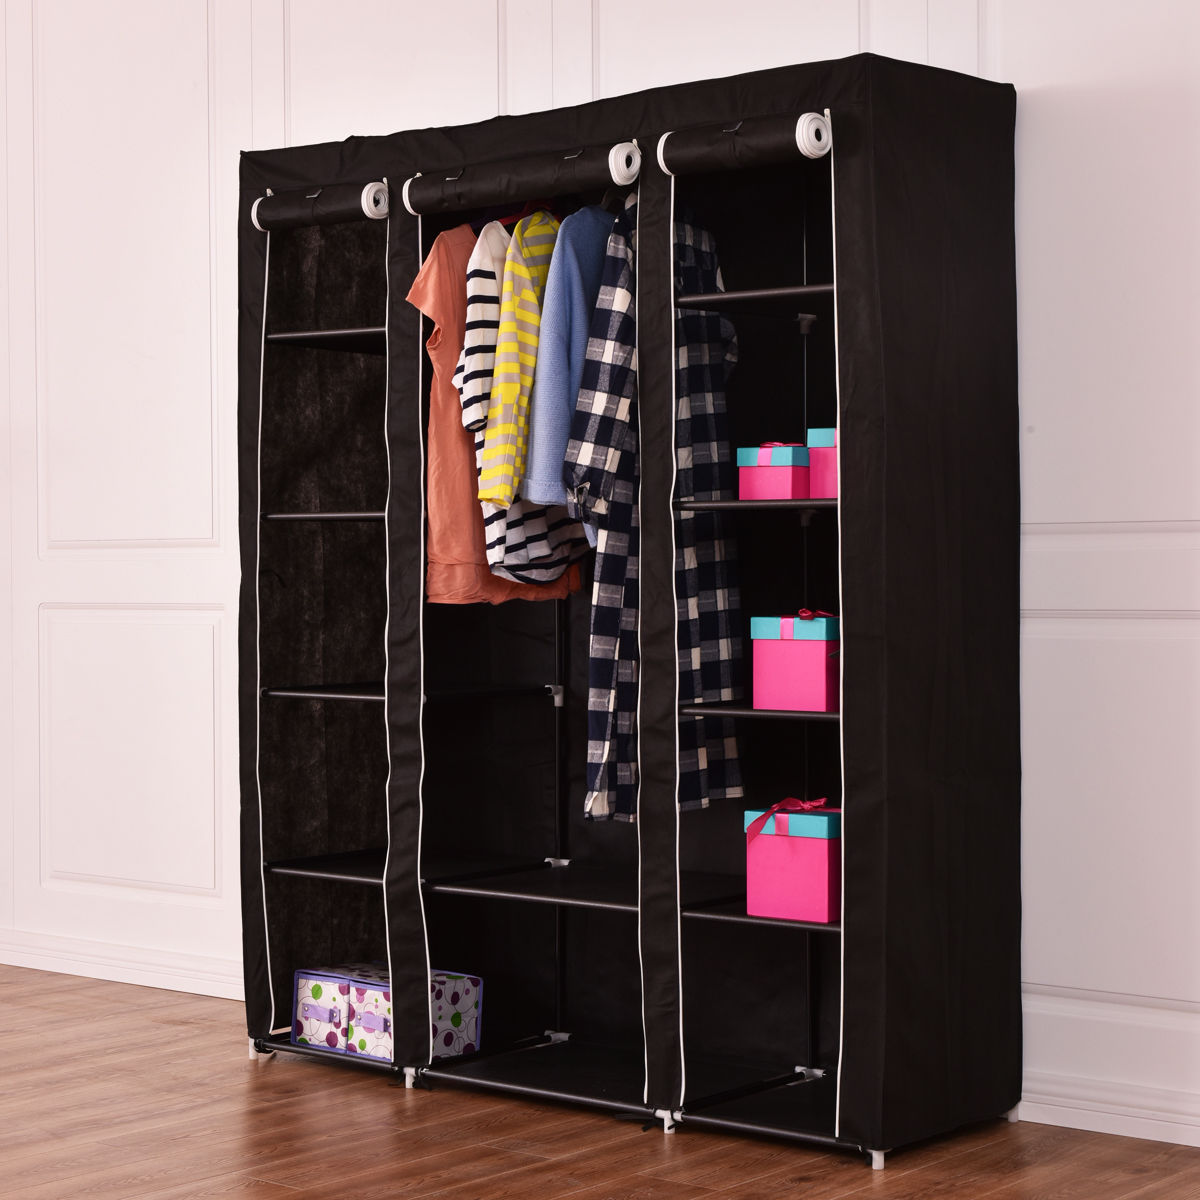 Costway 70 portable closet storage organizer clothes wardrobe shoe rack w shelves black walmart com